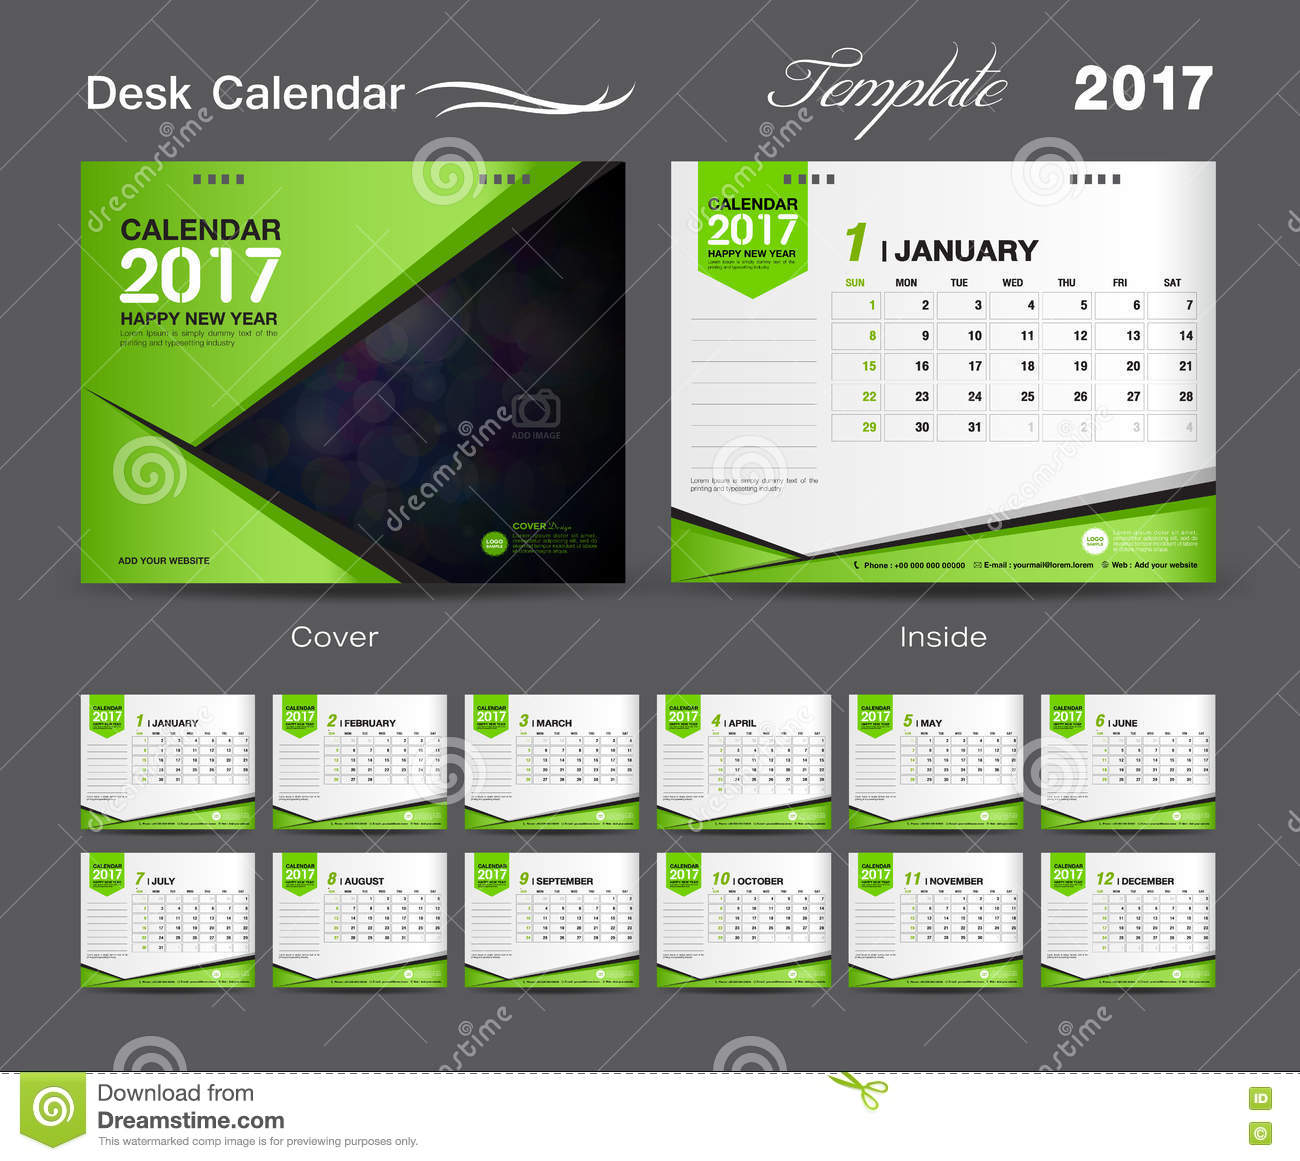 Cover Calendar Design Vector : Set green desk calendar template design cover